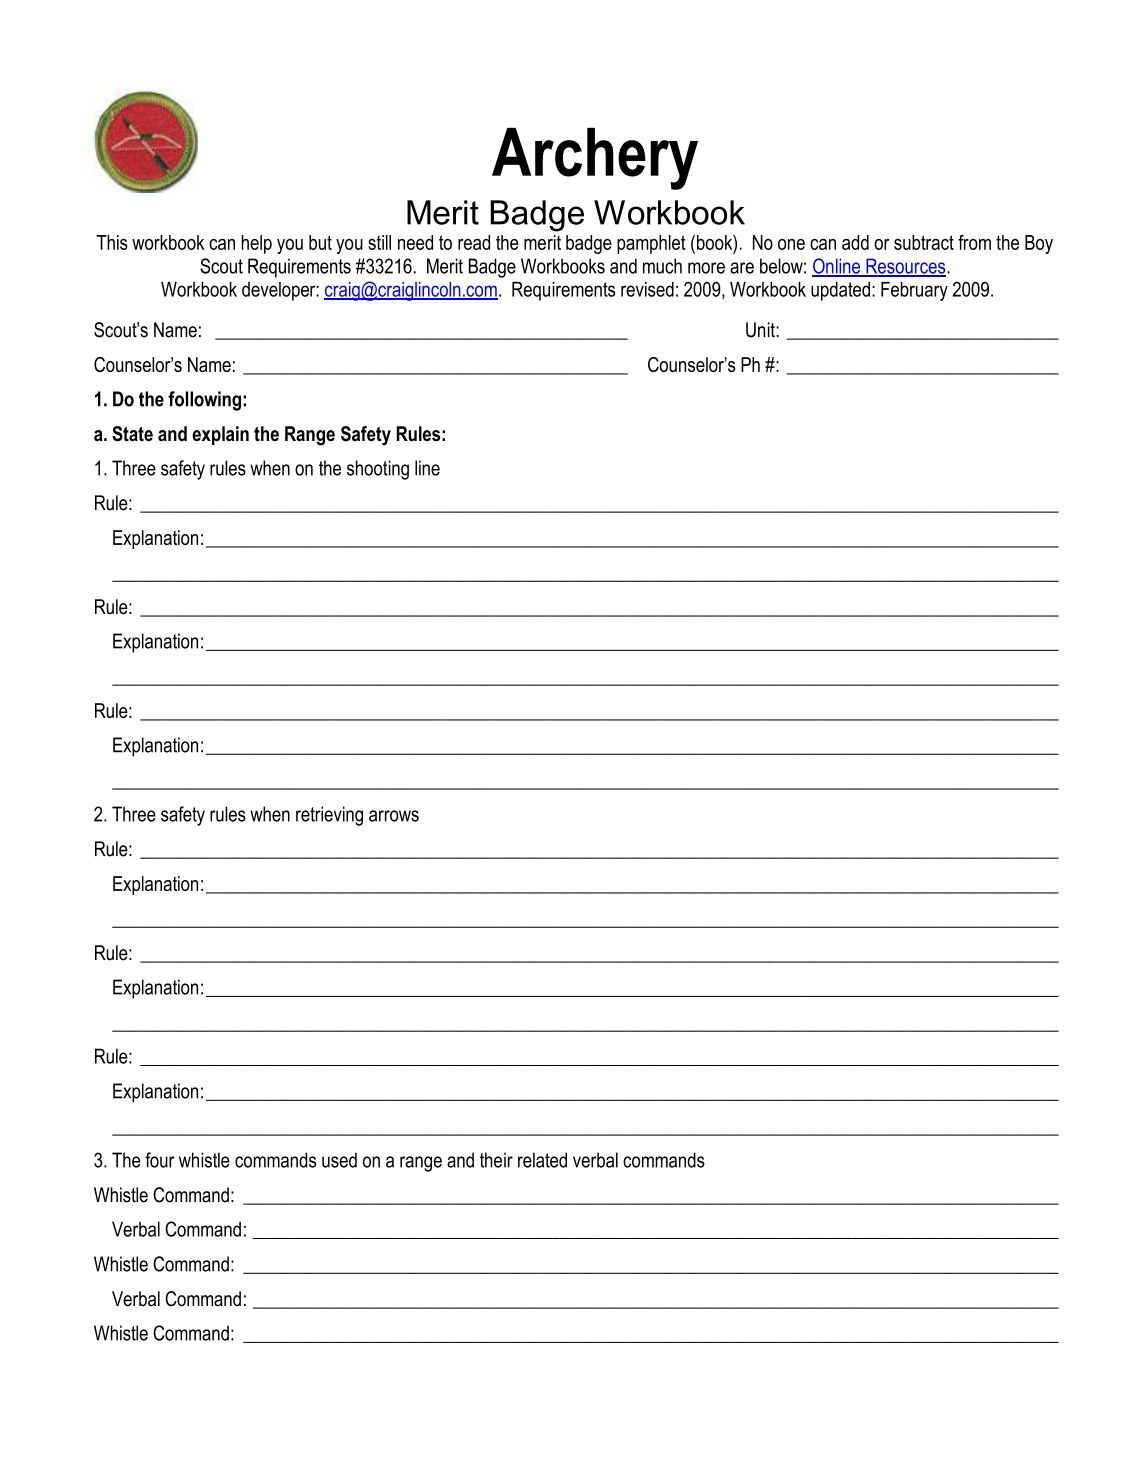 Worksheets Archery Merit Badge Worksheet Chicochino Worksheets – Bsa Cooking Merit Badge Worksheet